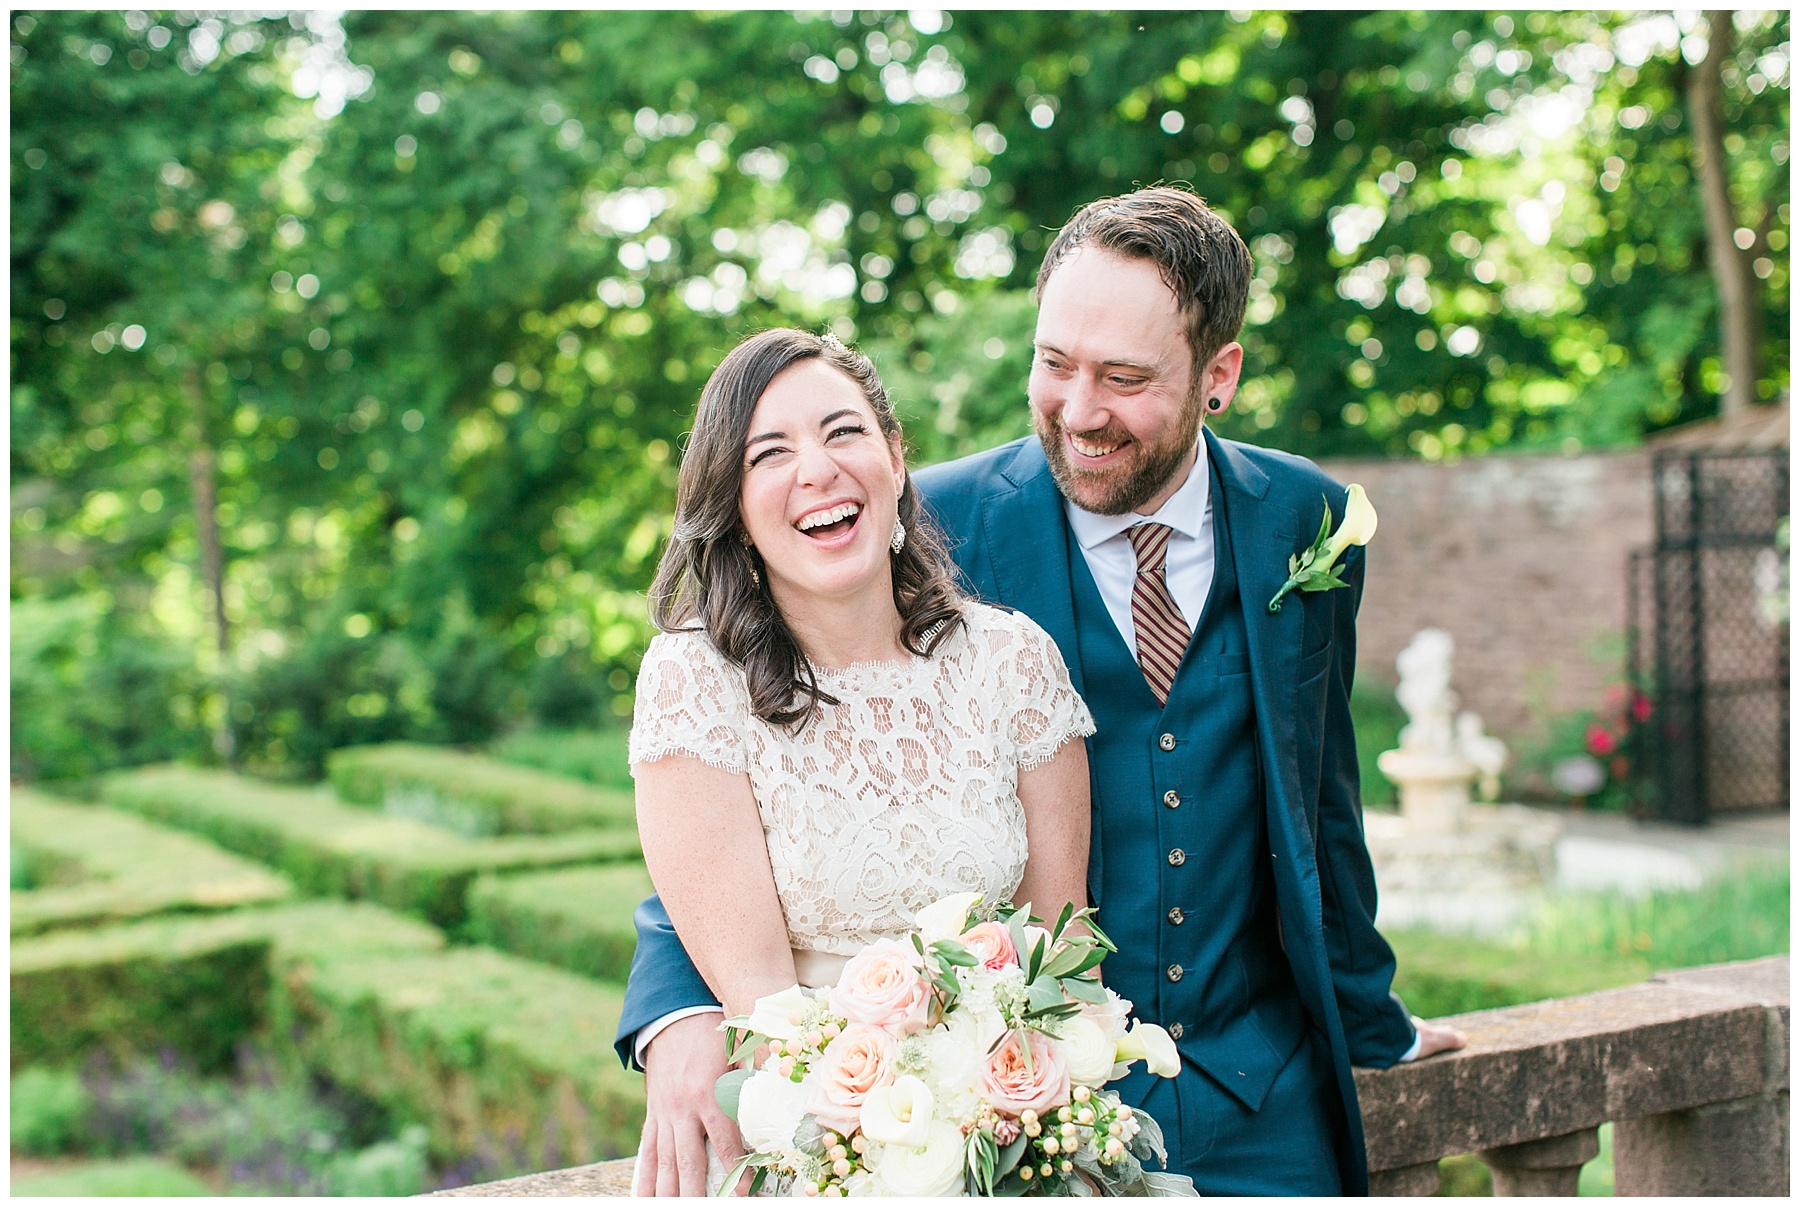 whimsical summer garden wedding | Tyler Gardens, Newtown PA